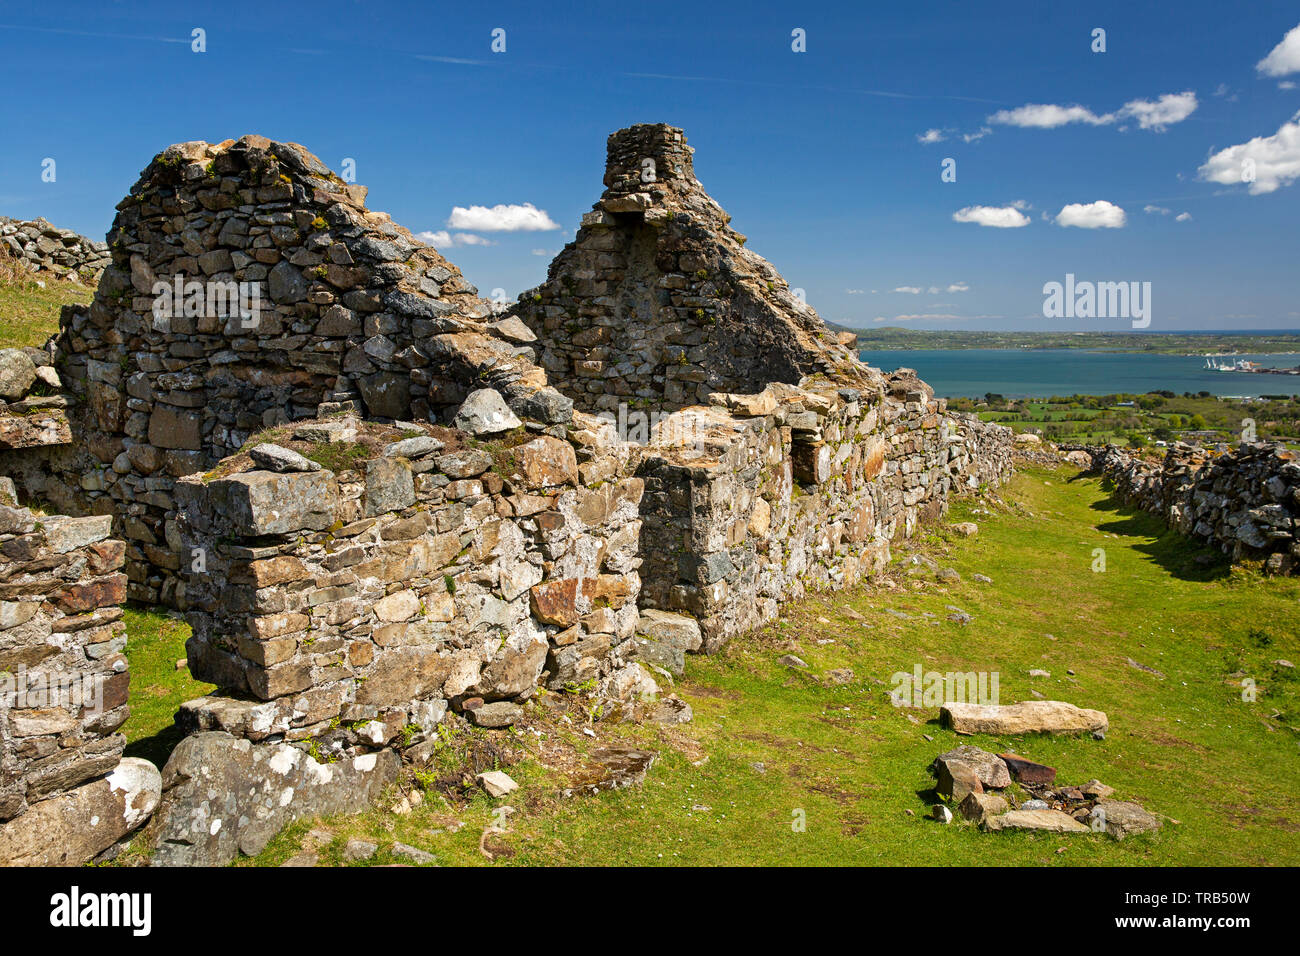 Ireland, Co Louth, Cooley Peninsula, Rooskey, ruins of house in abandoned pre-famine village - Stock Image